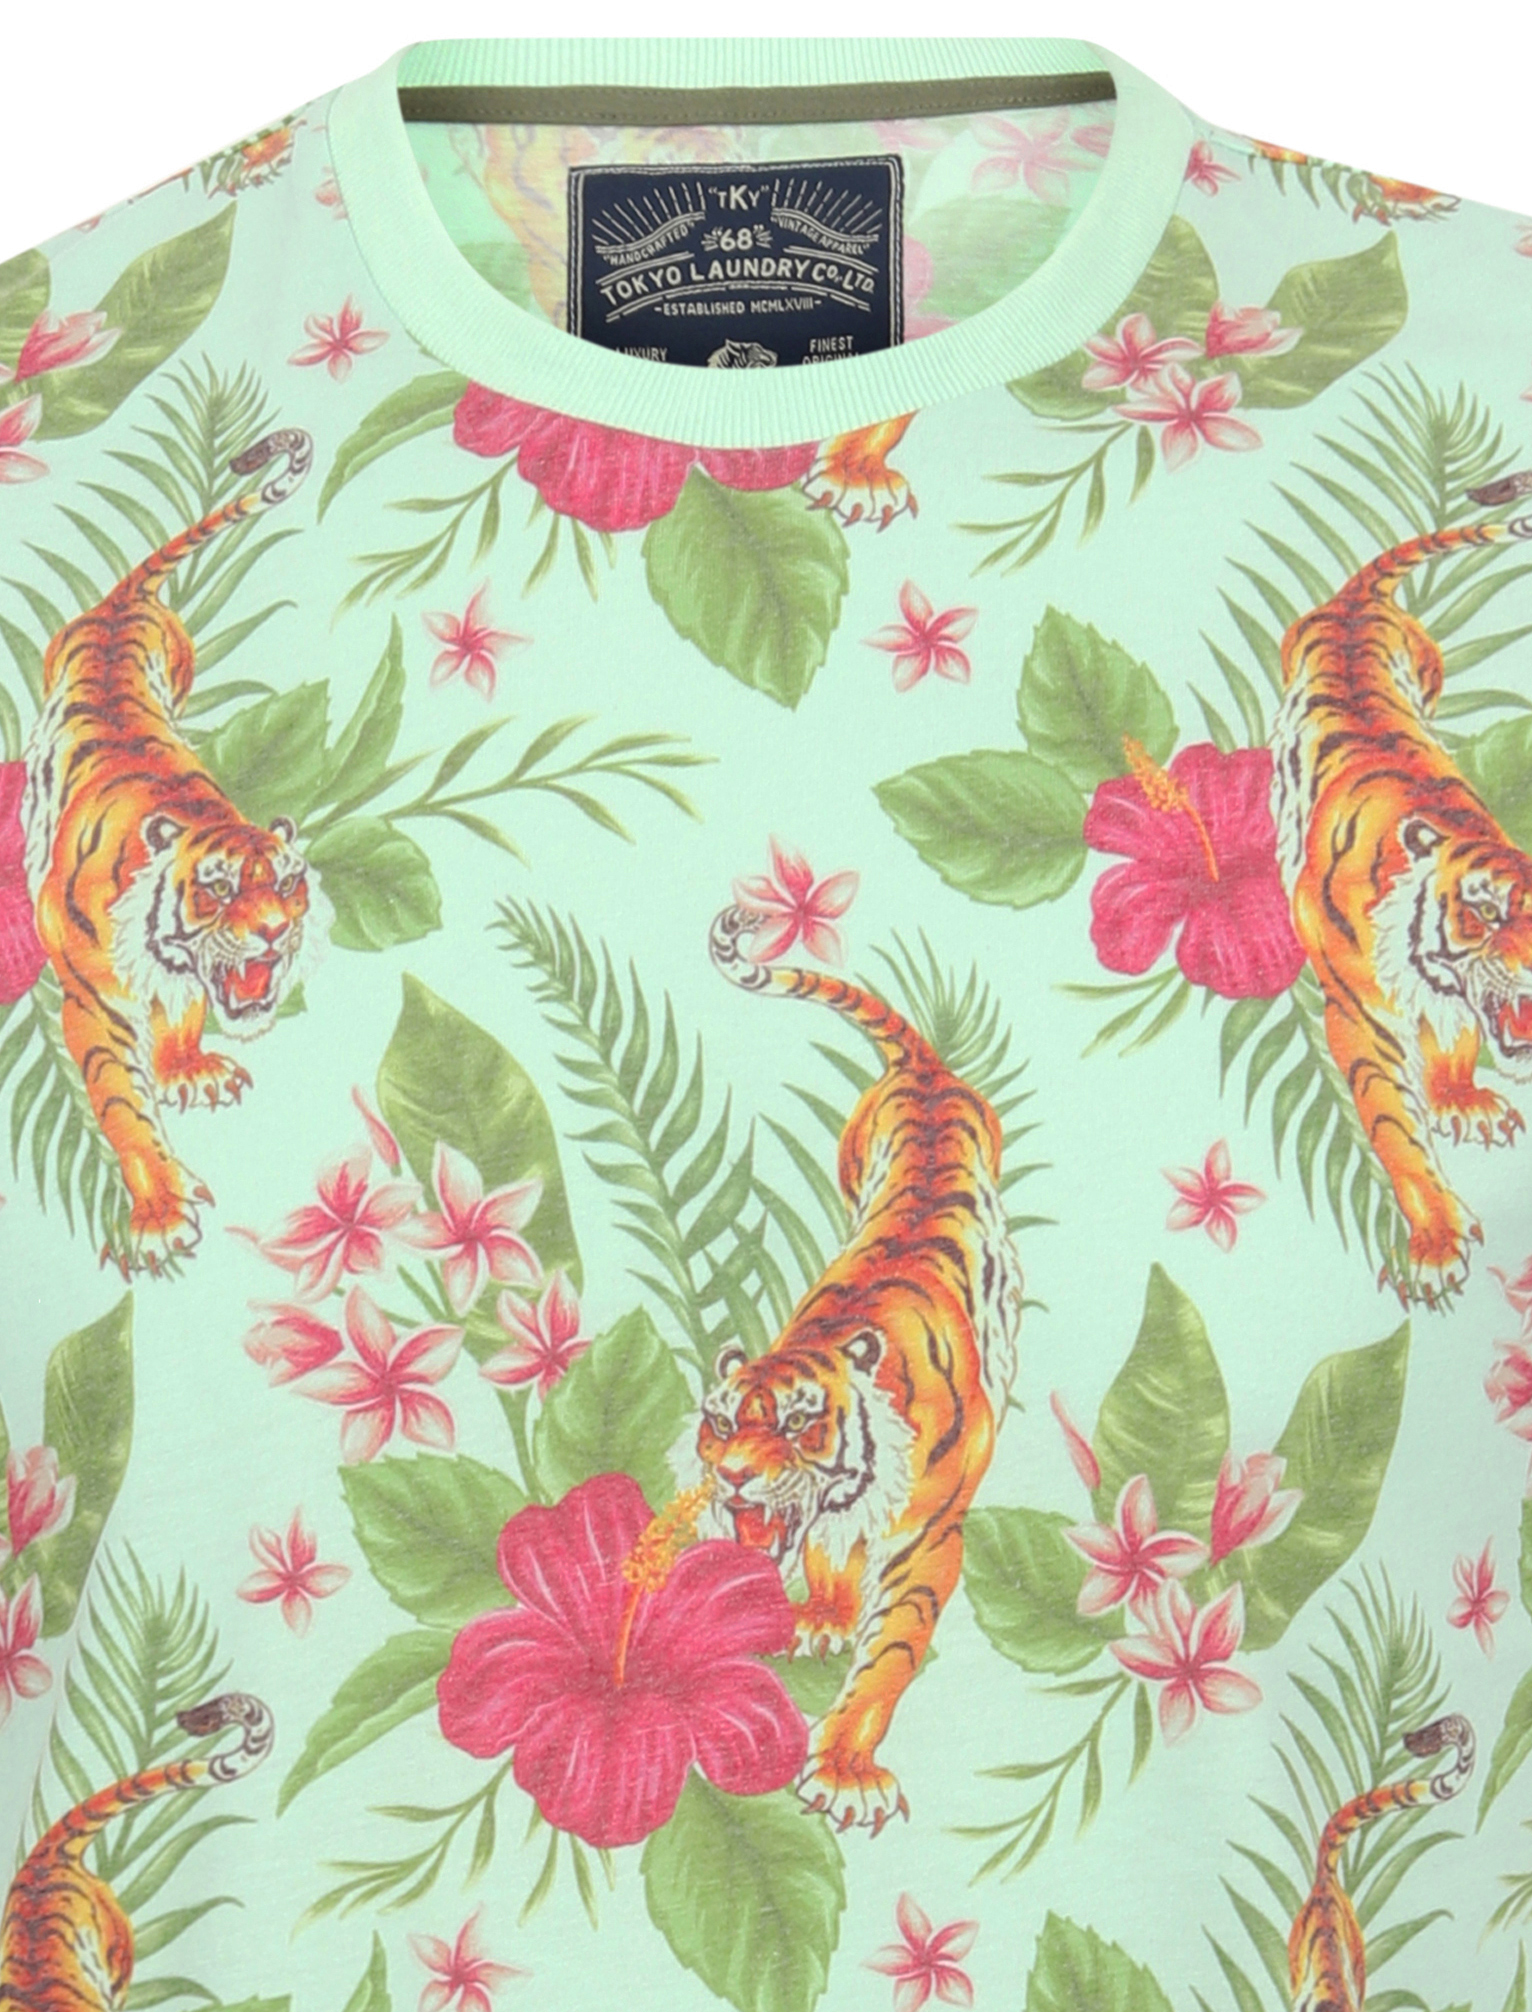 thumbnail 16 - Tokyo-Laundry-Tropical-Print-Crew-Neck-T-Shirt-Hawaiian-Floral-Summer-Holiday